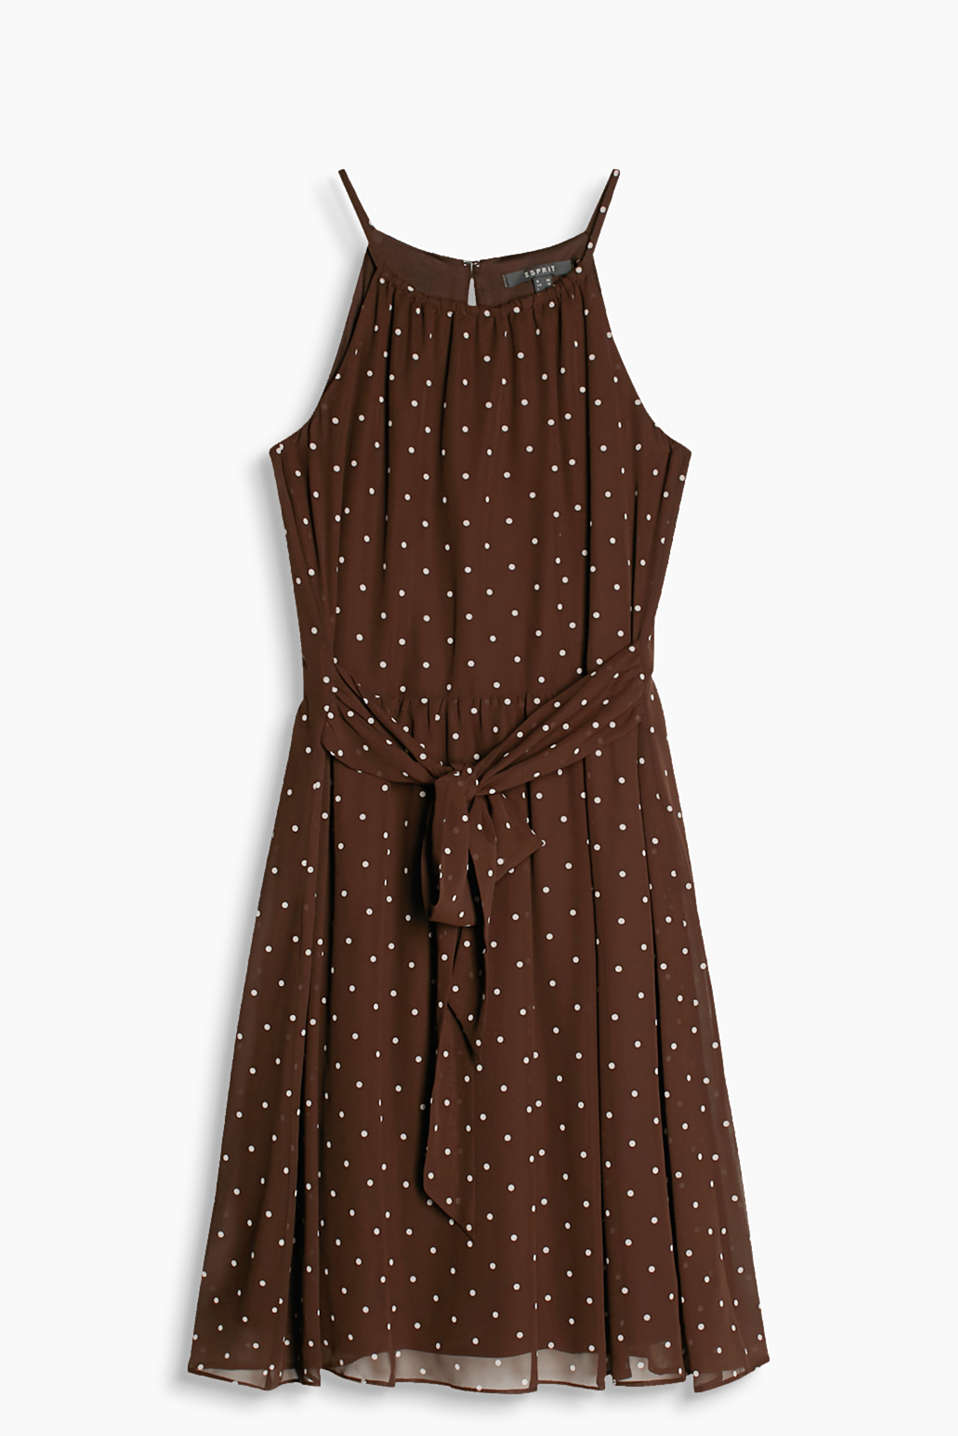 Airy chiffon dress with a polka dot pattern, cut-away shoulders and a waist sash